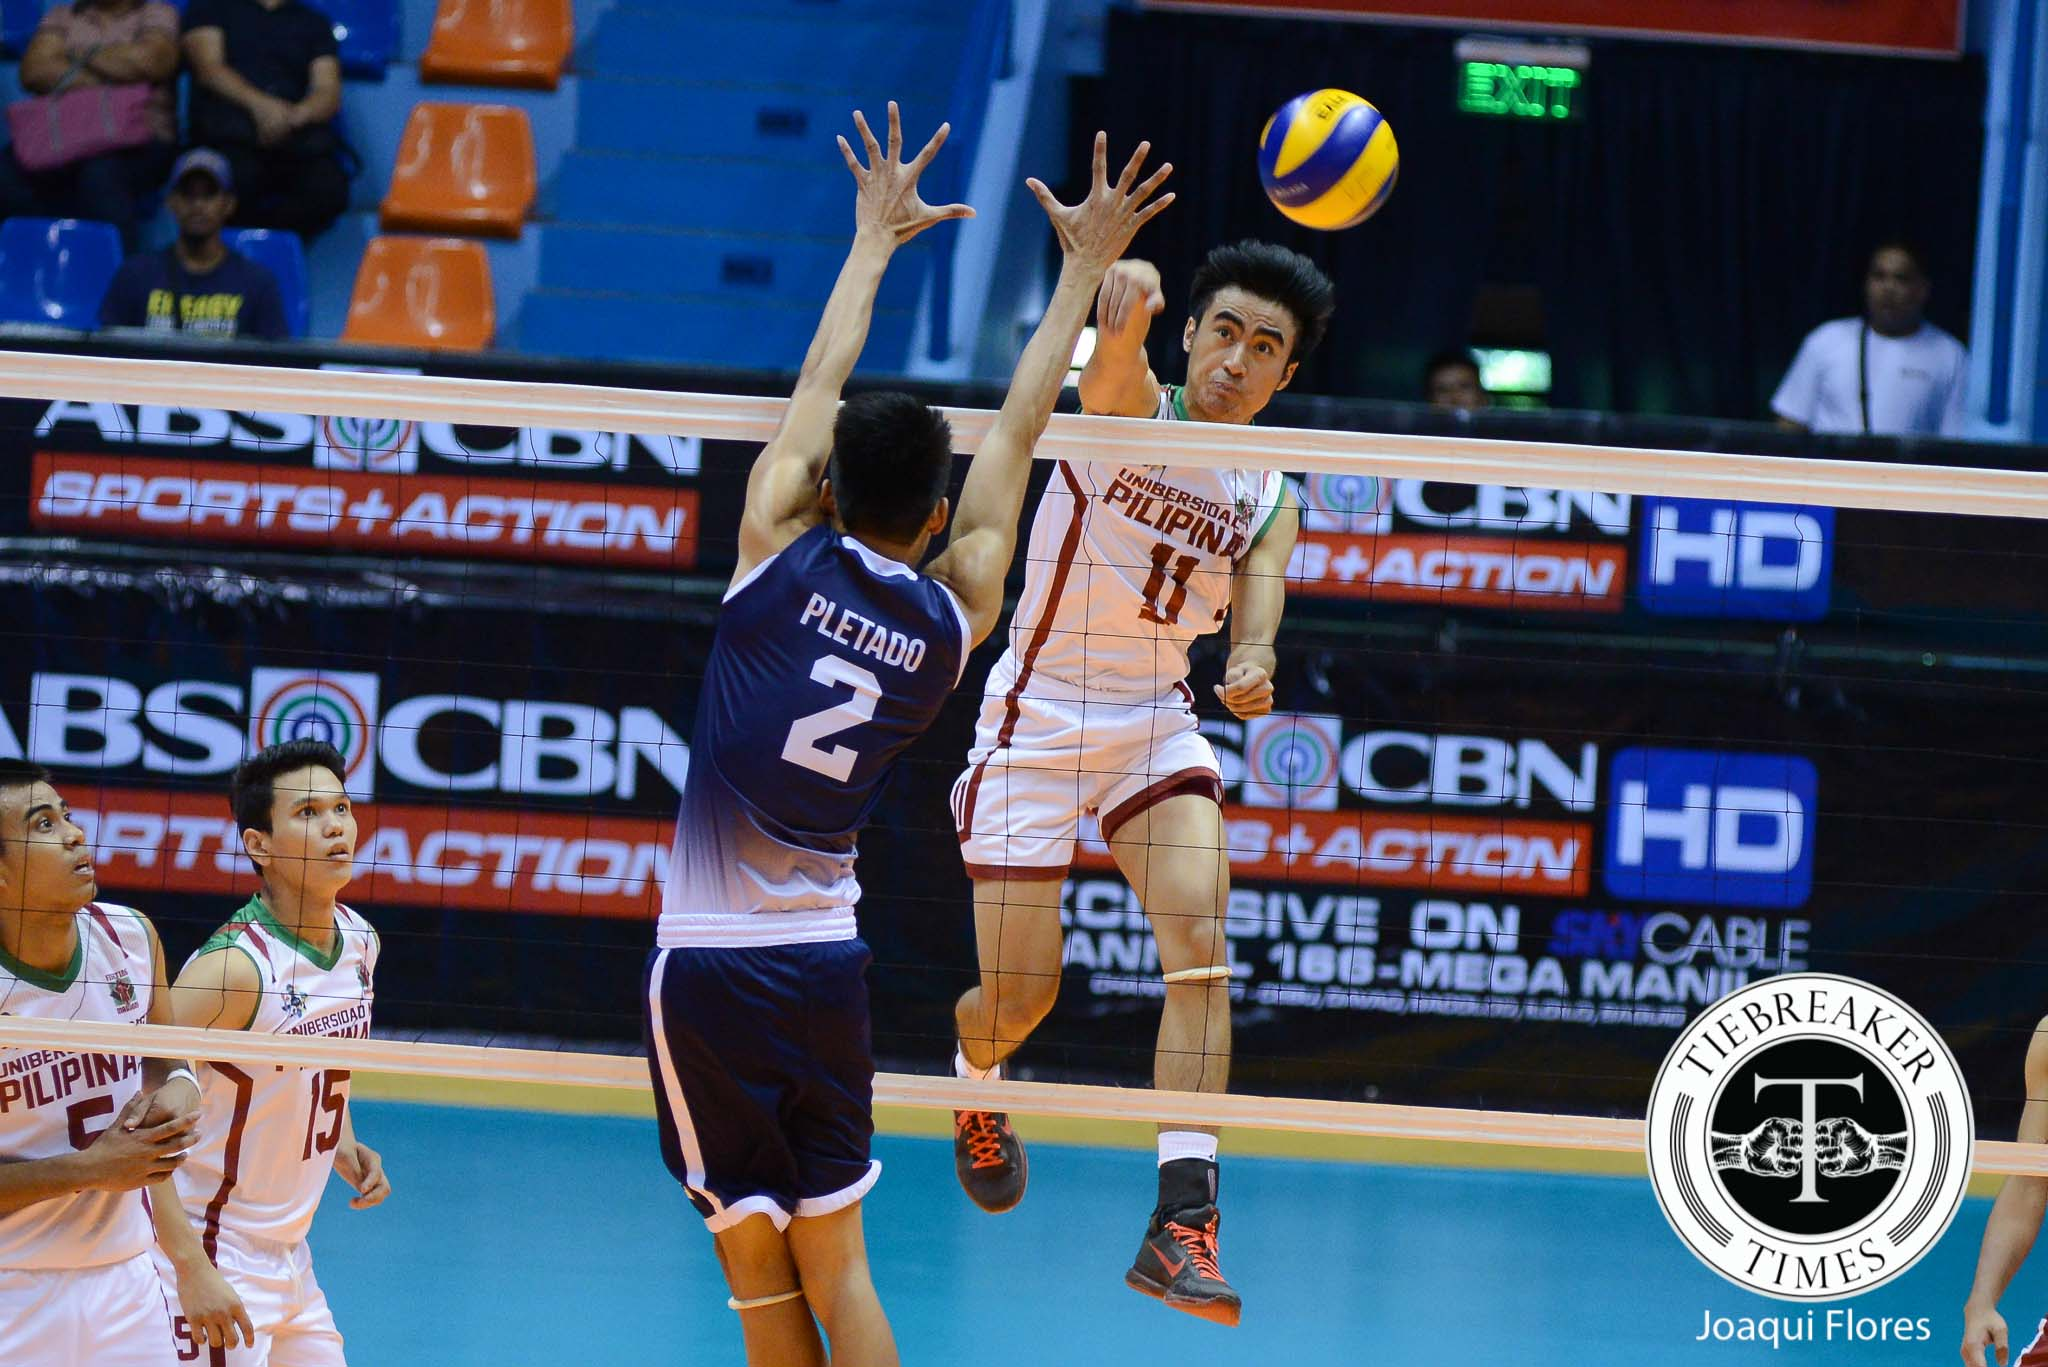 Tiebreaker Times Maroons climb back to Final Four, block Falcons AdU News UAAP UP Volleyball  Wendel Miguel UP Men's Volleyball UAAP Season 78 Men's Volleyball UAAP Season 78 Rodrigo Palmero Mike Sudaria Mac Millete Jerome Sarmiento Domeng custodio Dave PLetado Alfred Valbuena AdU Men's Volleyball